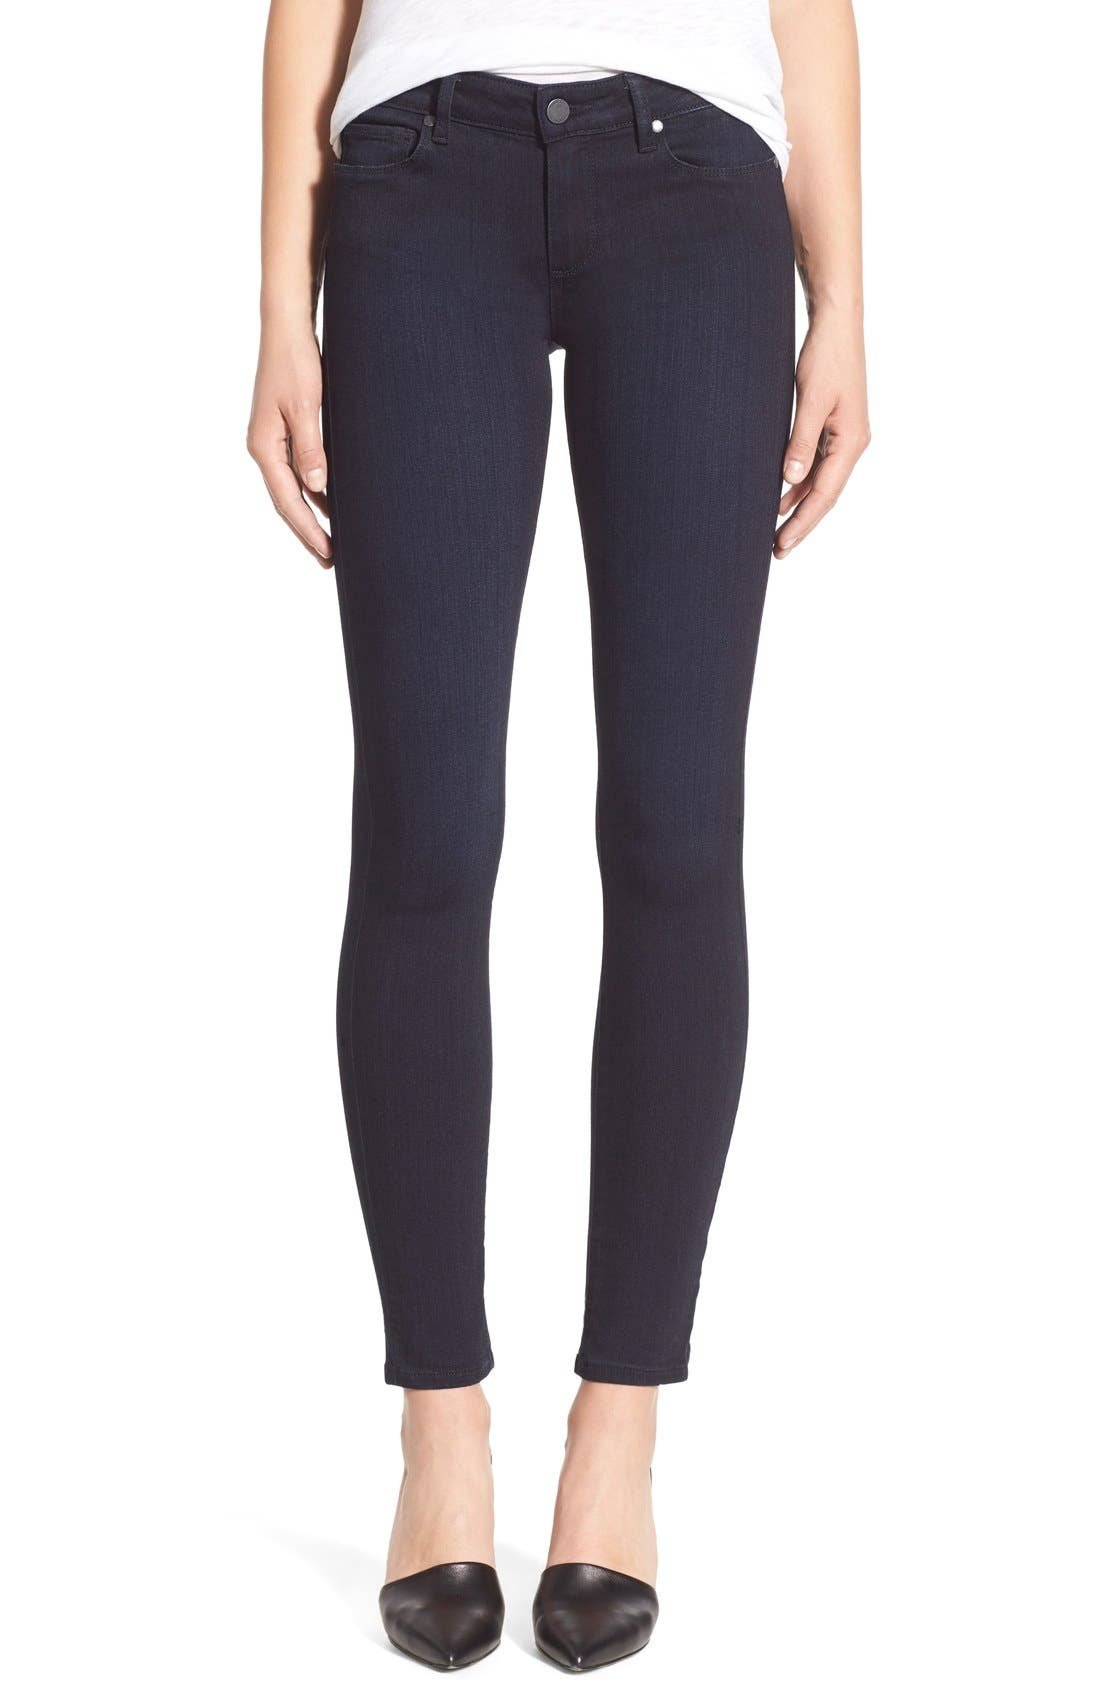 Alternate Image 1 Selected - Paige Denim 'Verdugo' Ultra Skinny Jeans (Amorie)